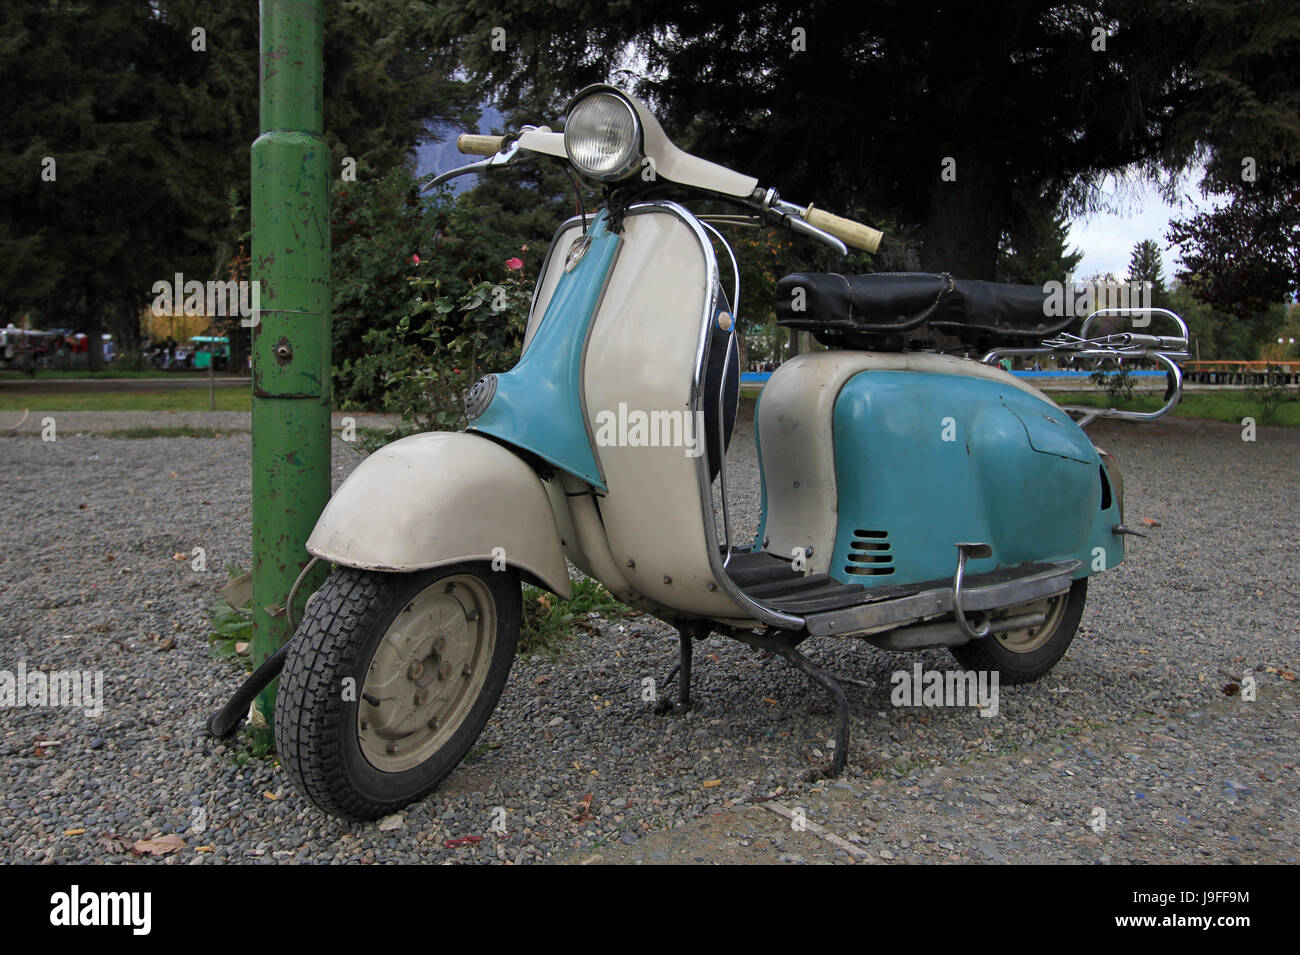 Blue Vintage scooter in El Bolson, Argentina Stock Photo